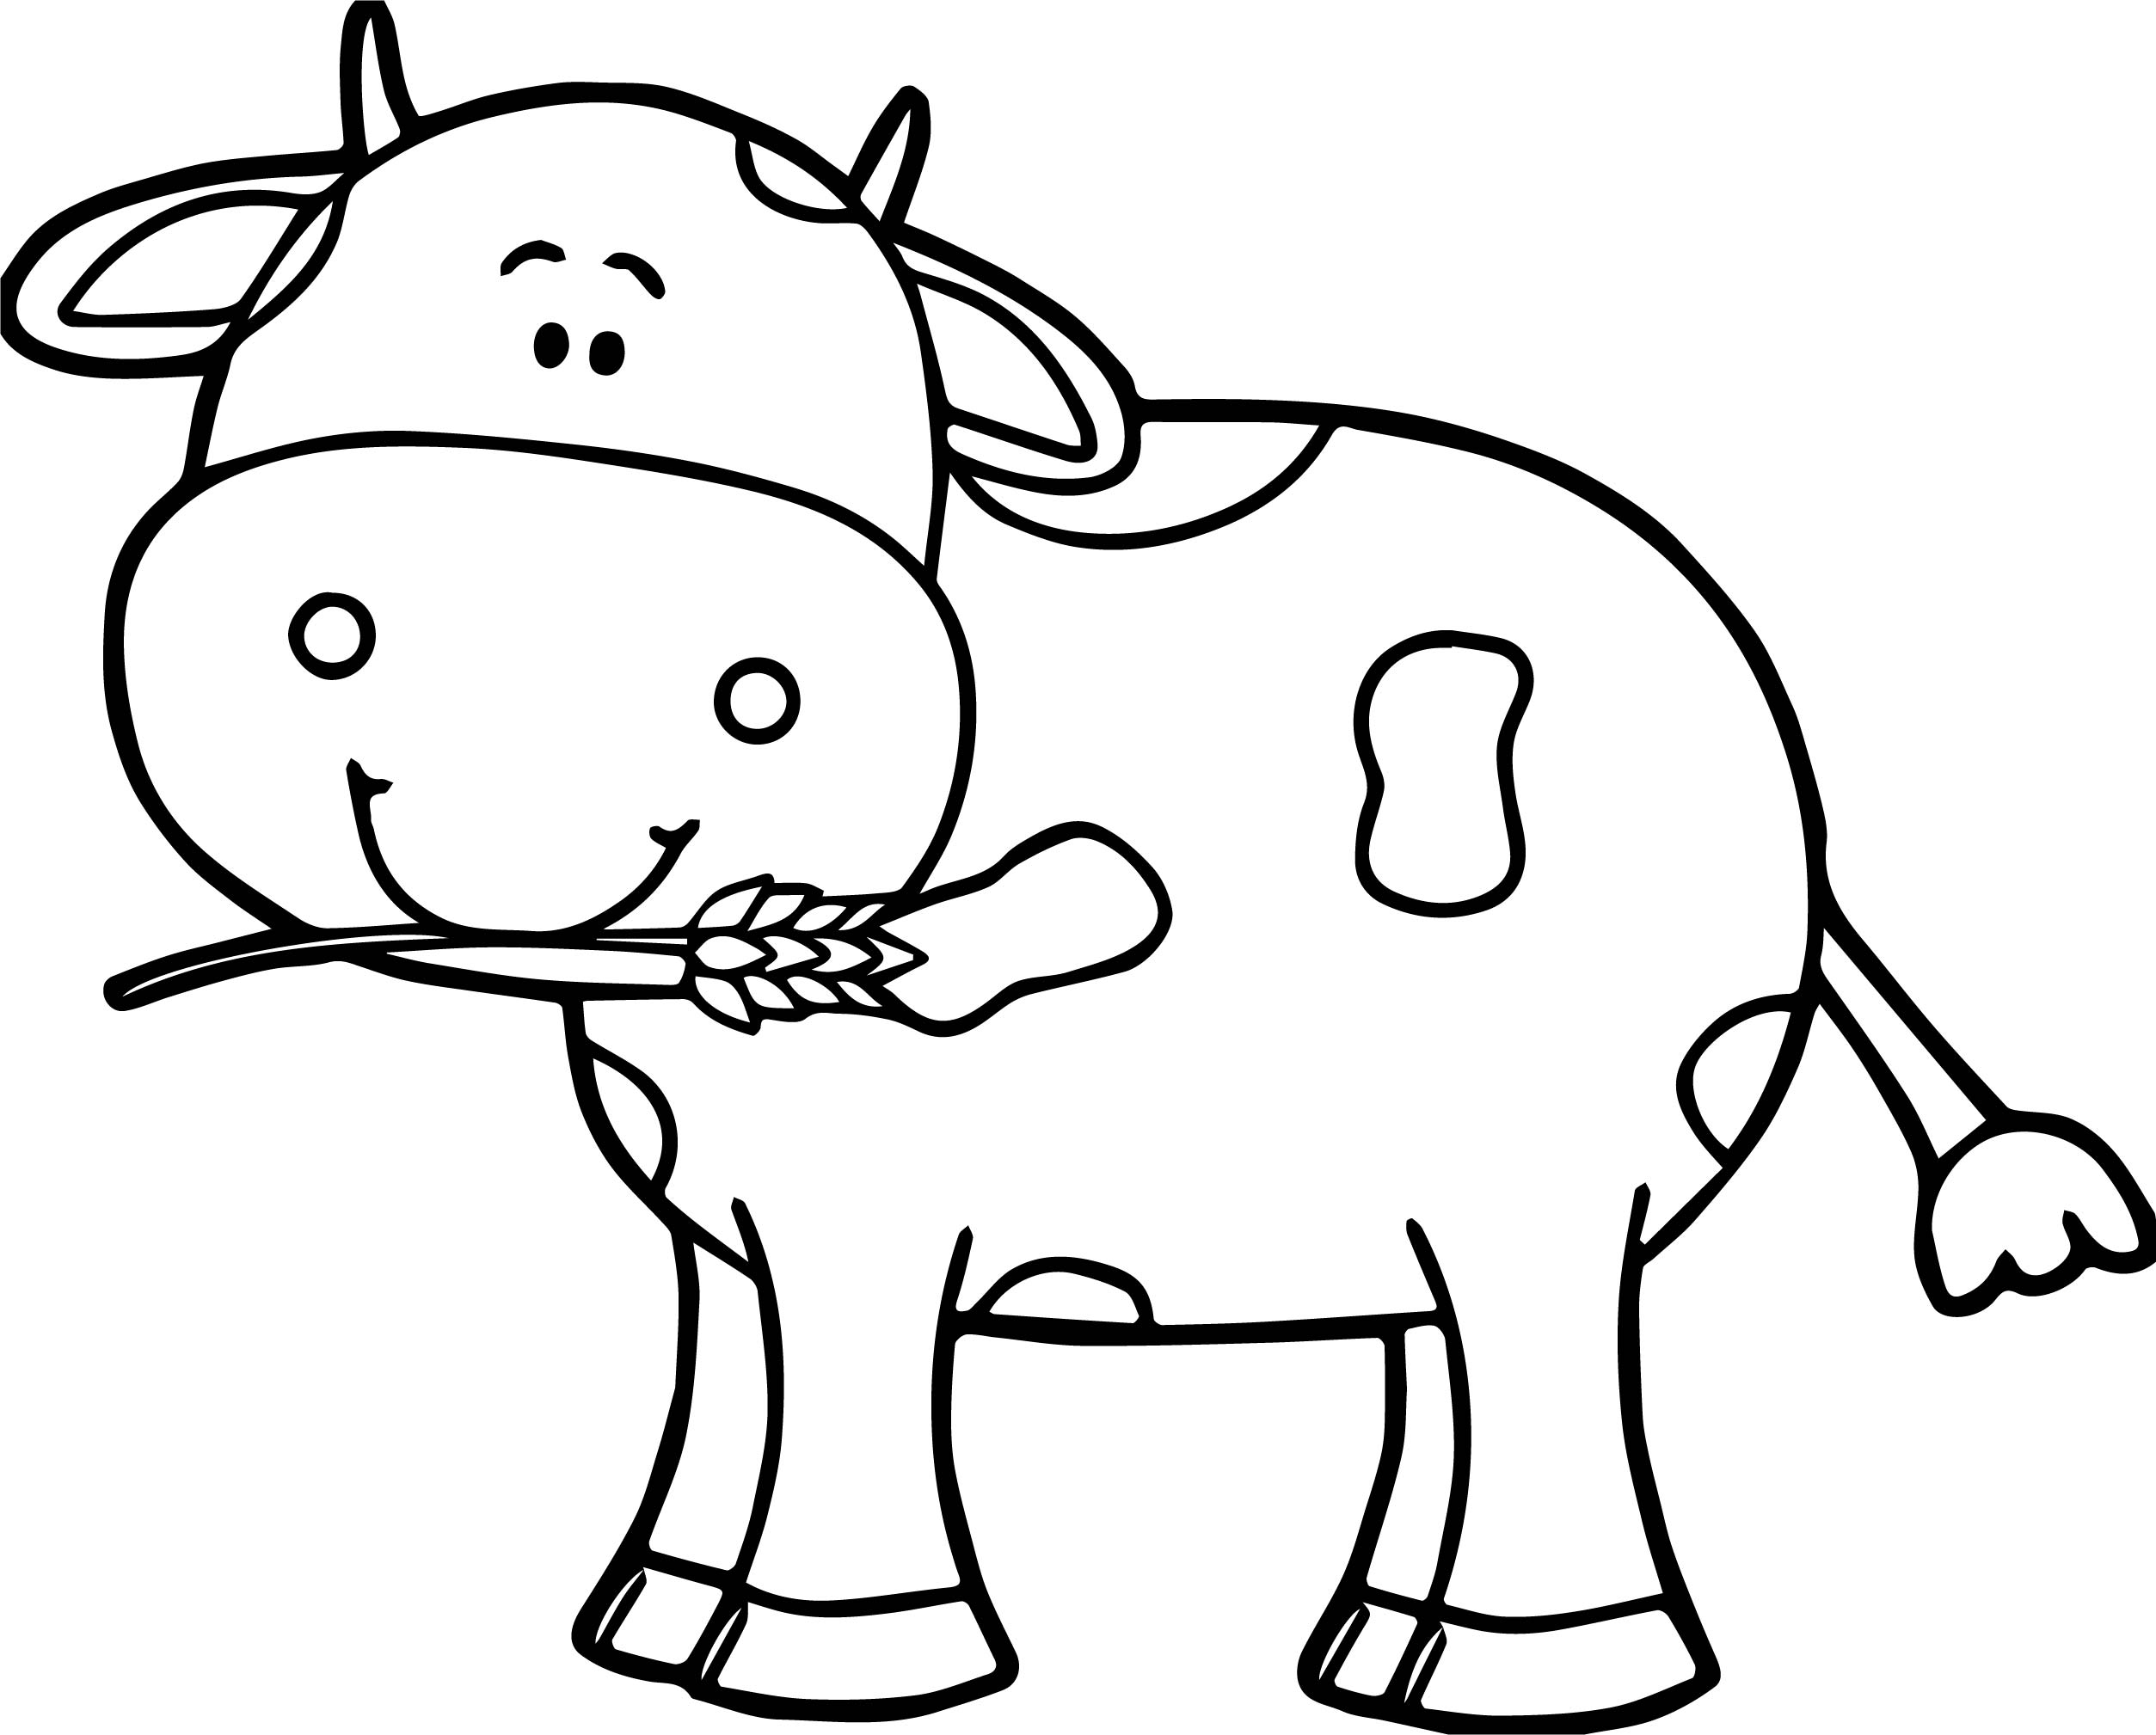 cow coloring page free printable cow coloring pages for kids cool2bkids page cow coloring